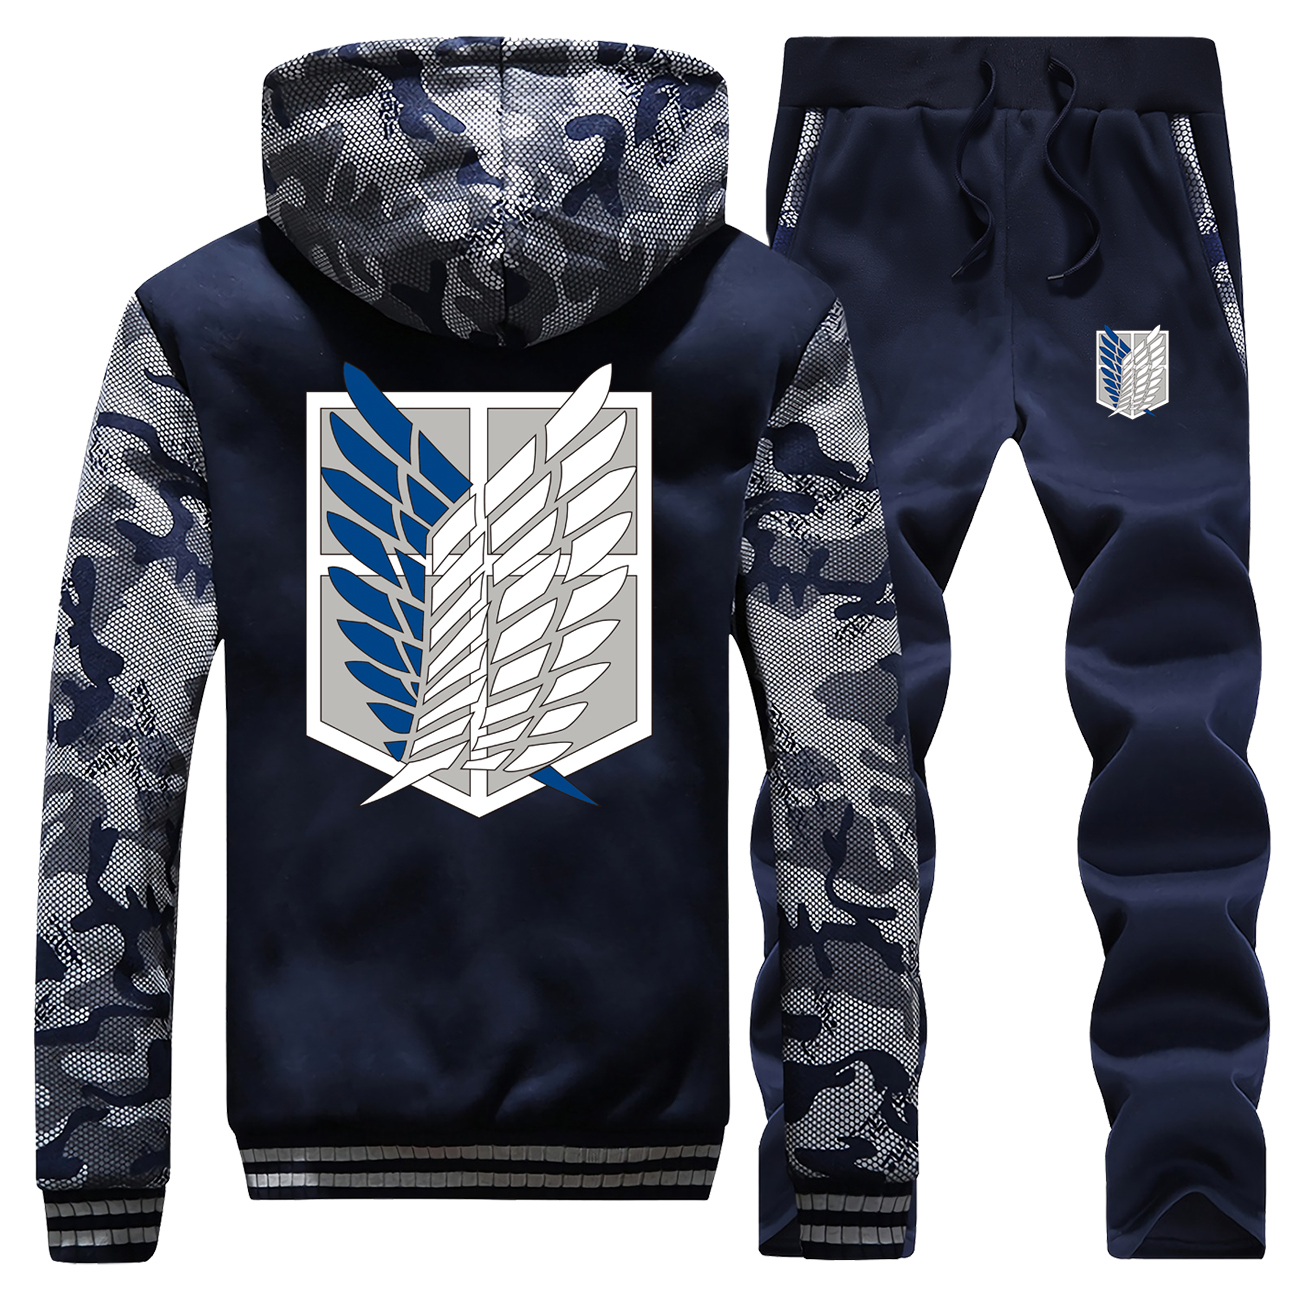 Attack On Titan Thick Hoodie Anime Wings Of Freedom Sweatshirt Men Winter Jacket Warm Suit Tracksuit Hoodie+Pants 2 Piece Sets